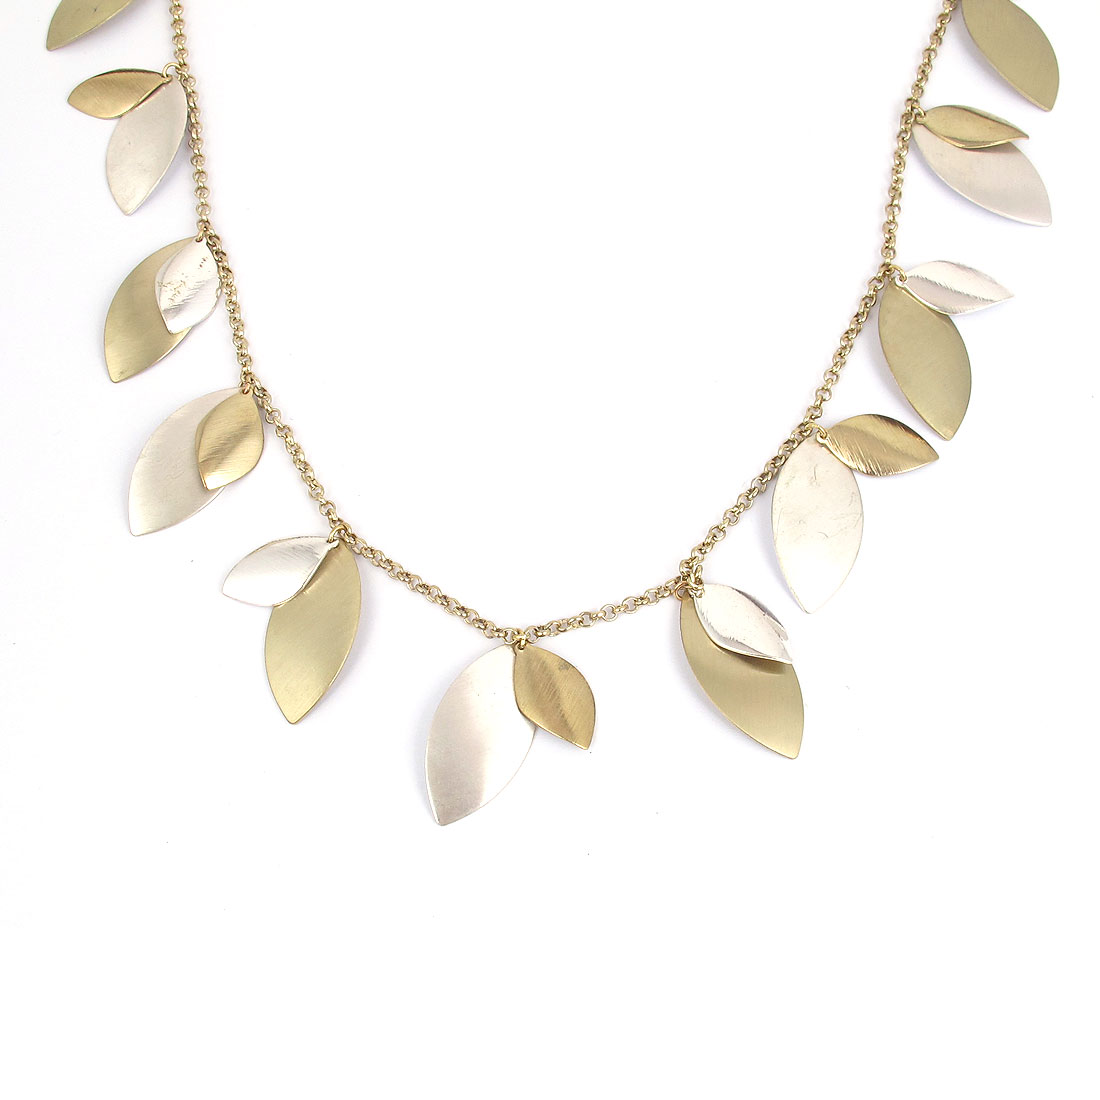 Ladies Metal Oval Leaves Shape Pendant Lobster Buckle Strip Link Slim Chain Necklace Neckwear Collar Gold Tone White